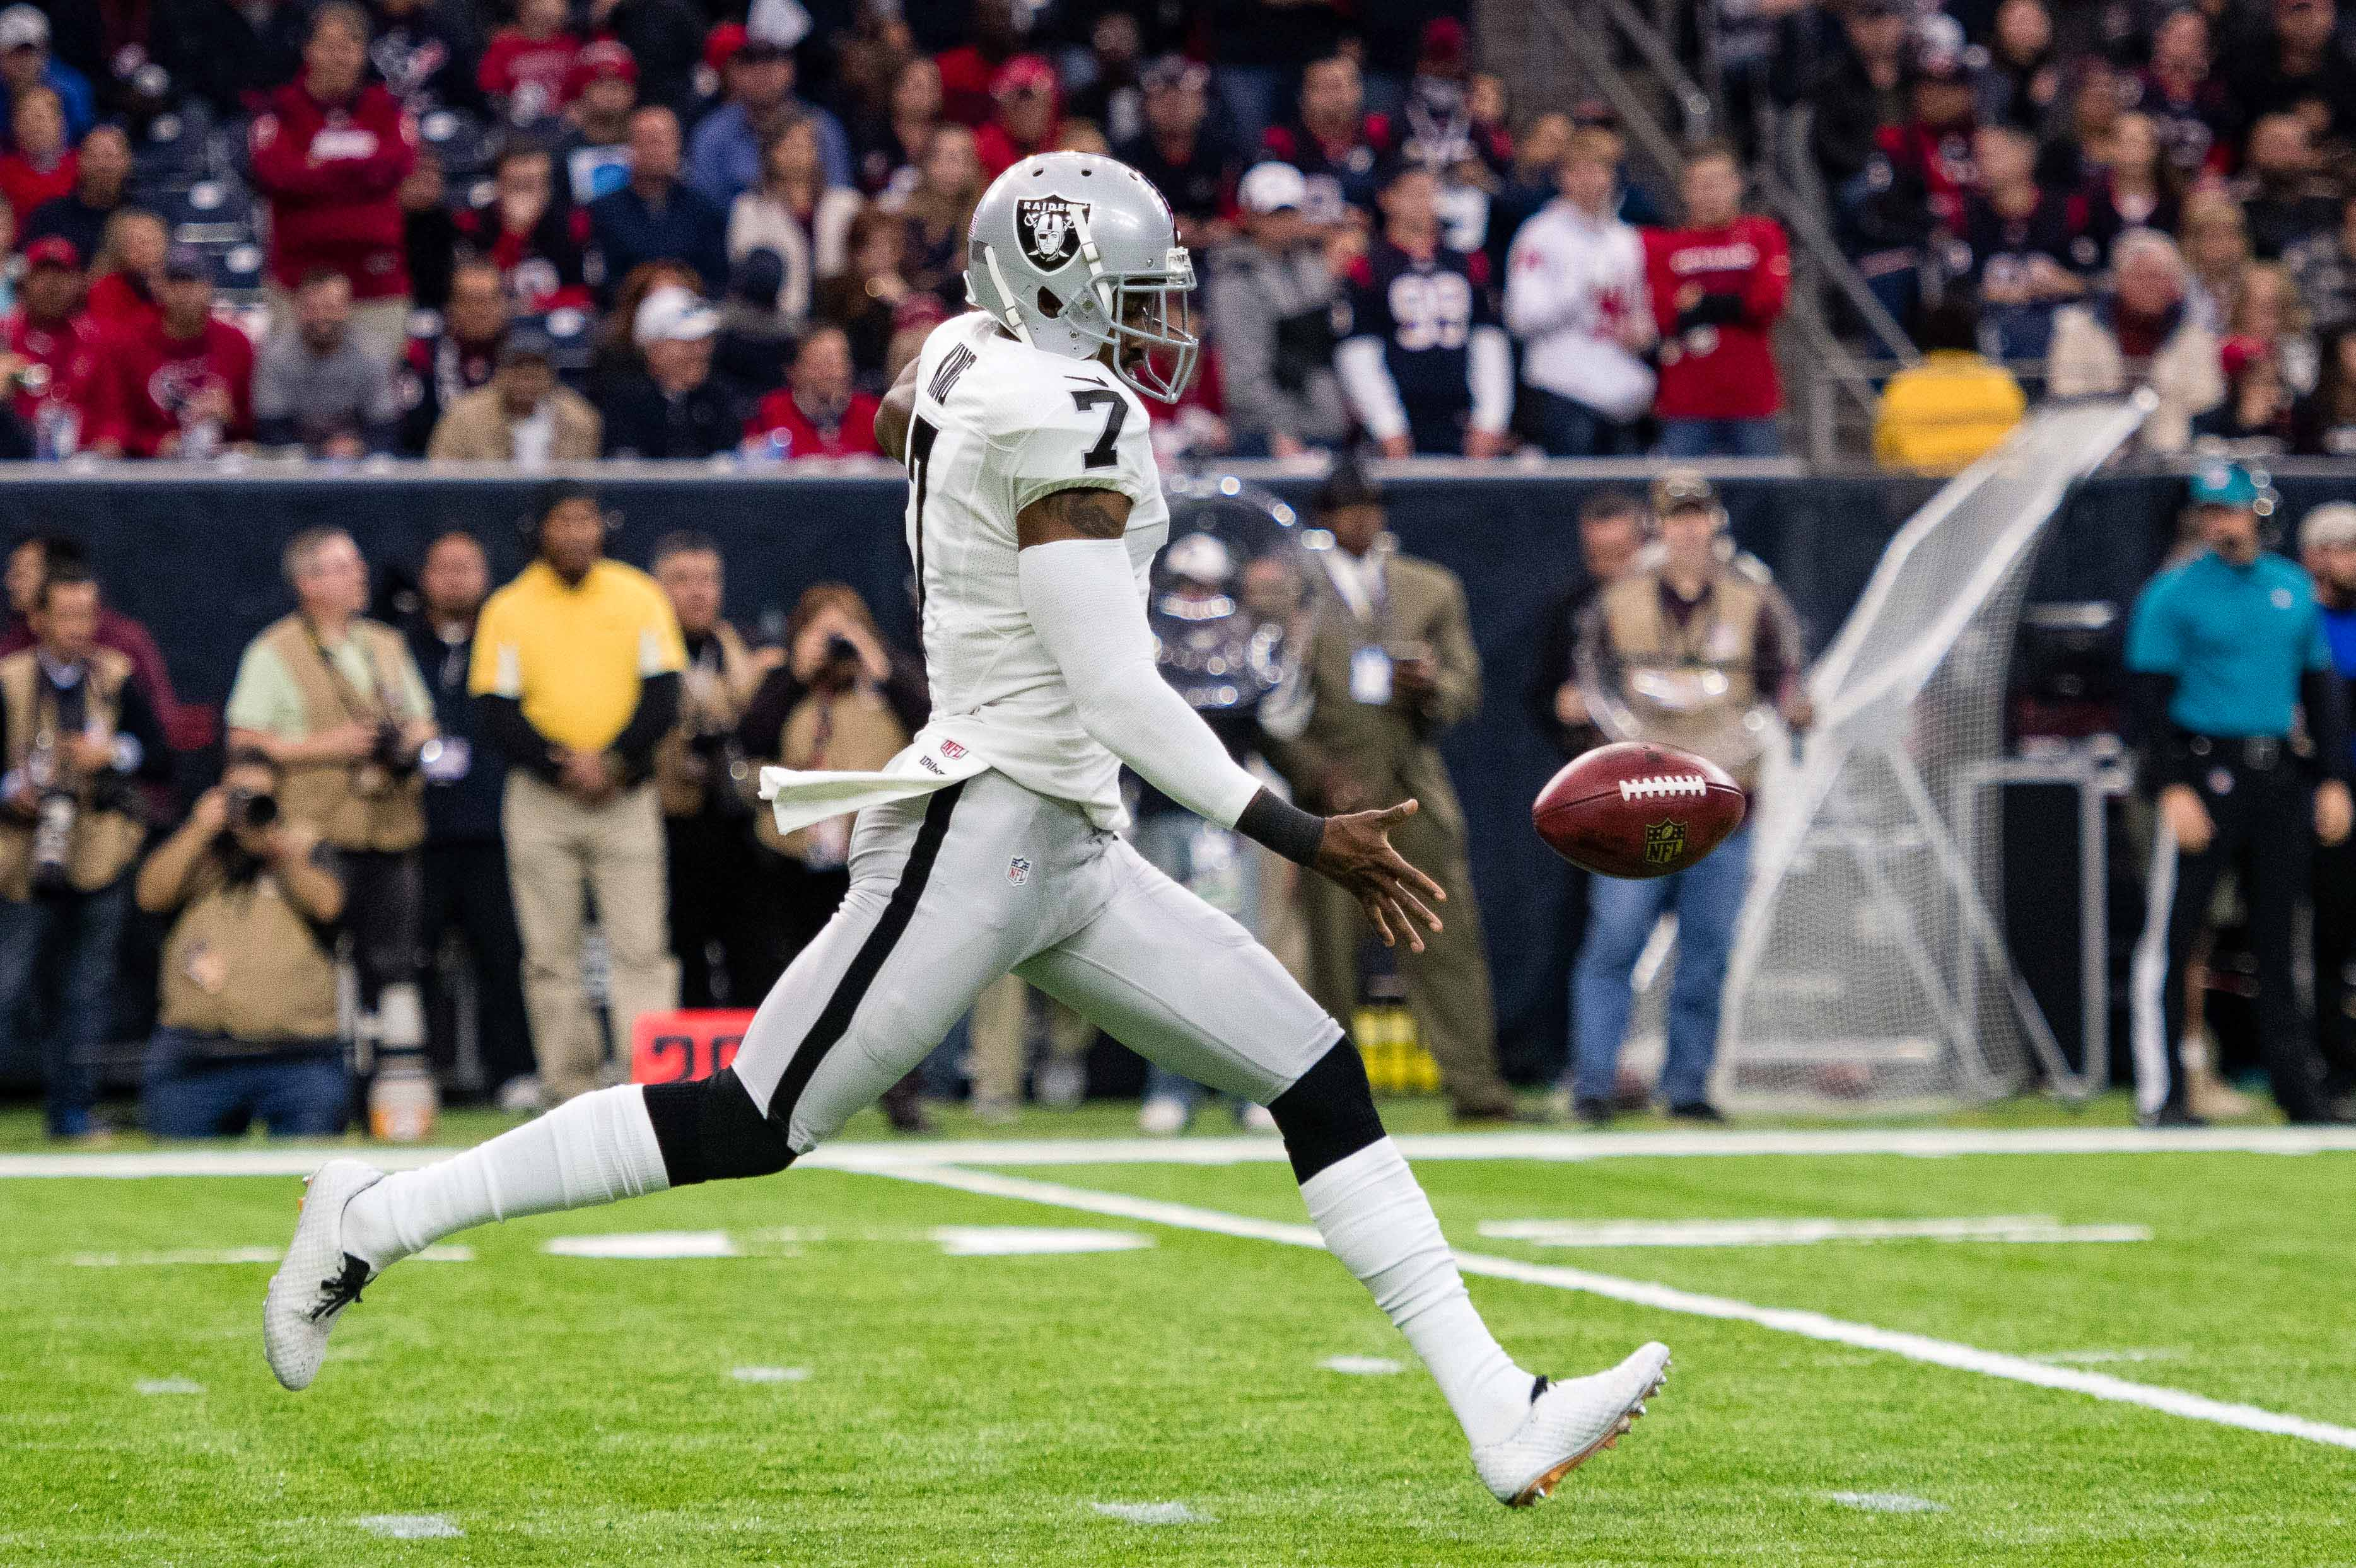 9805220-nfl-afc-wild-card-oakland-raiders-at-houston-texans